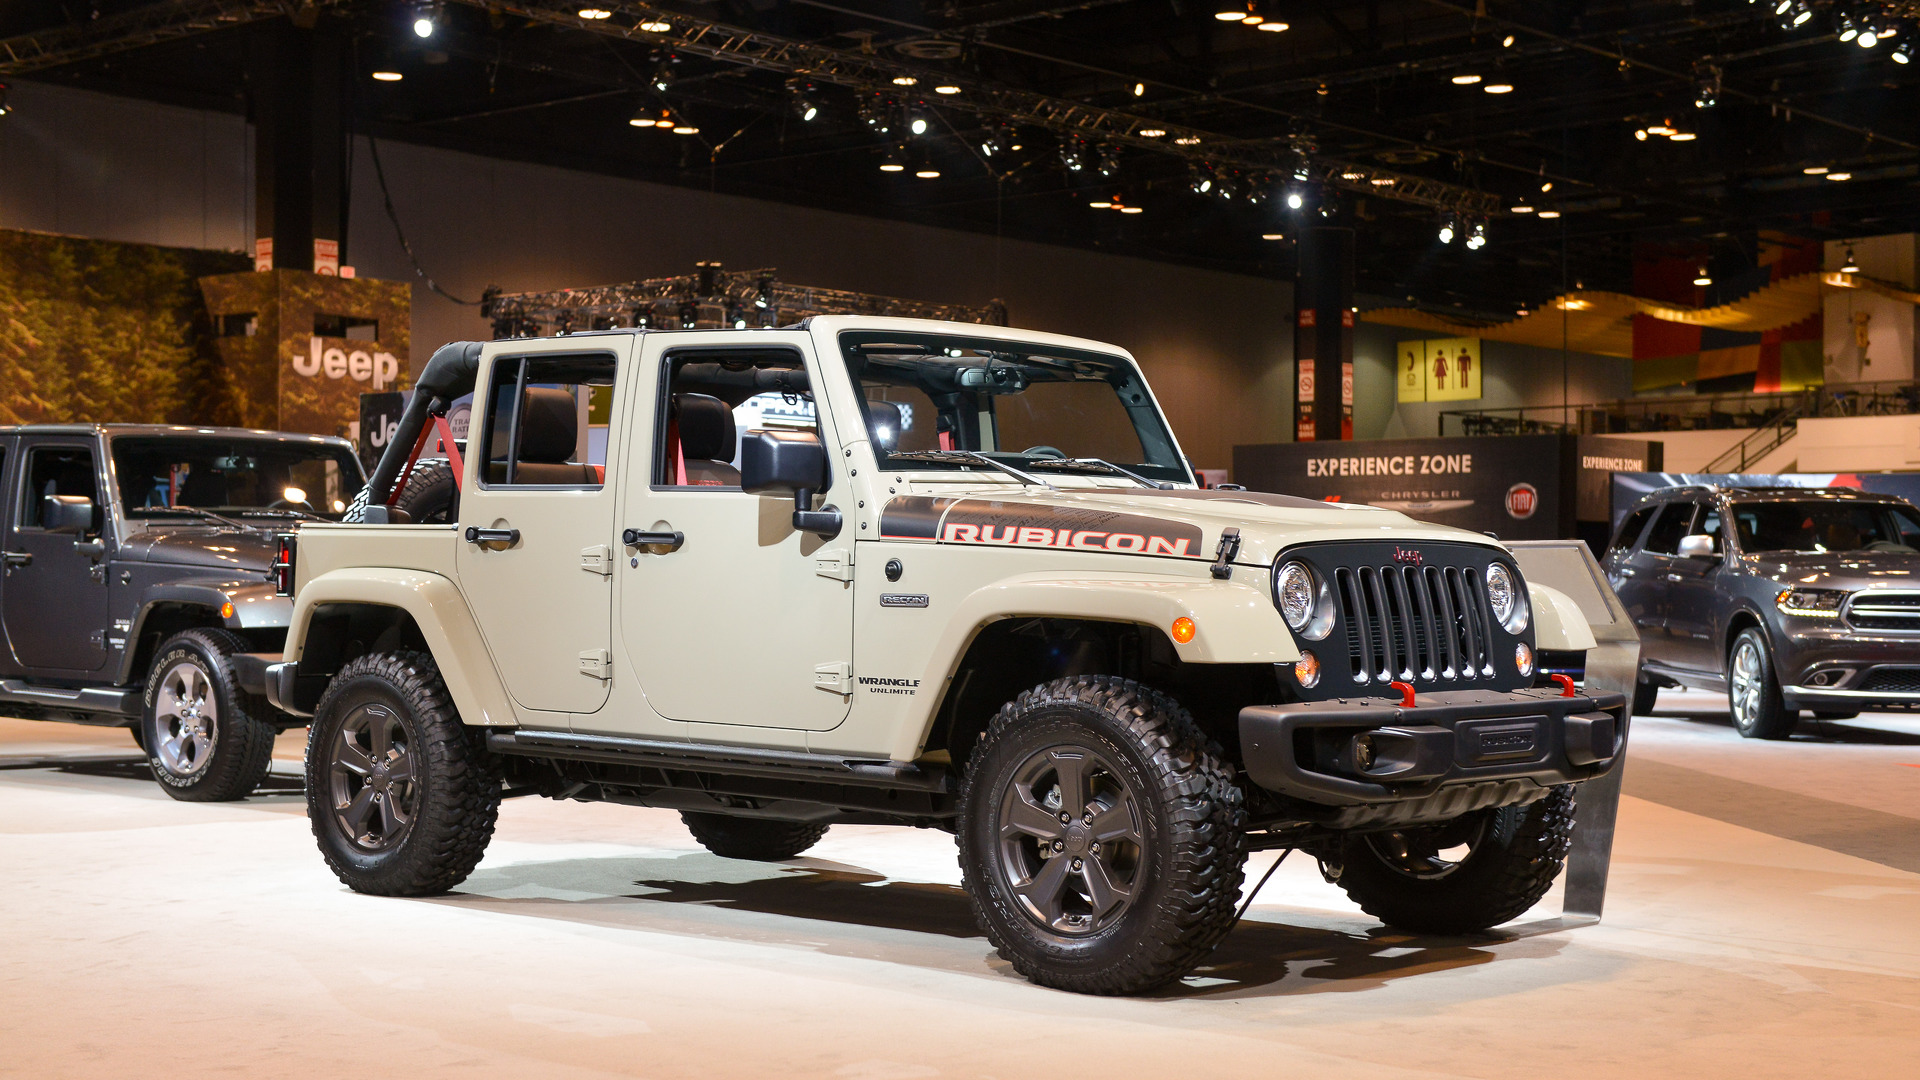 Jeep Jl Wrangler >> 6 details you might have missed on the Jeep Wrangler Rubicon Recon